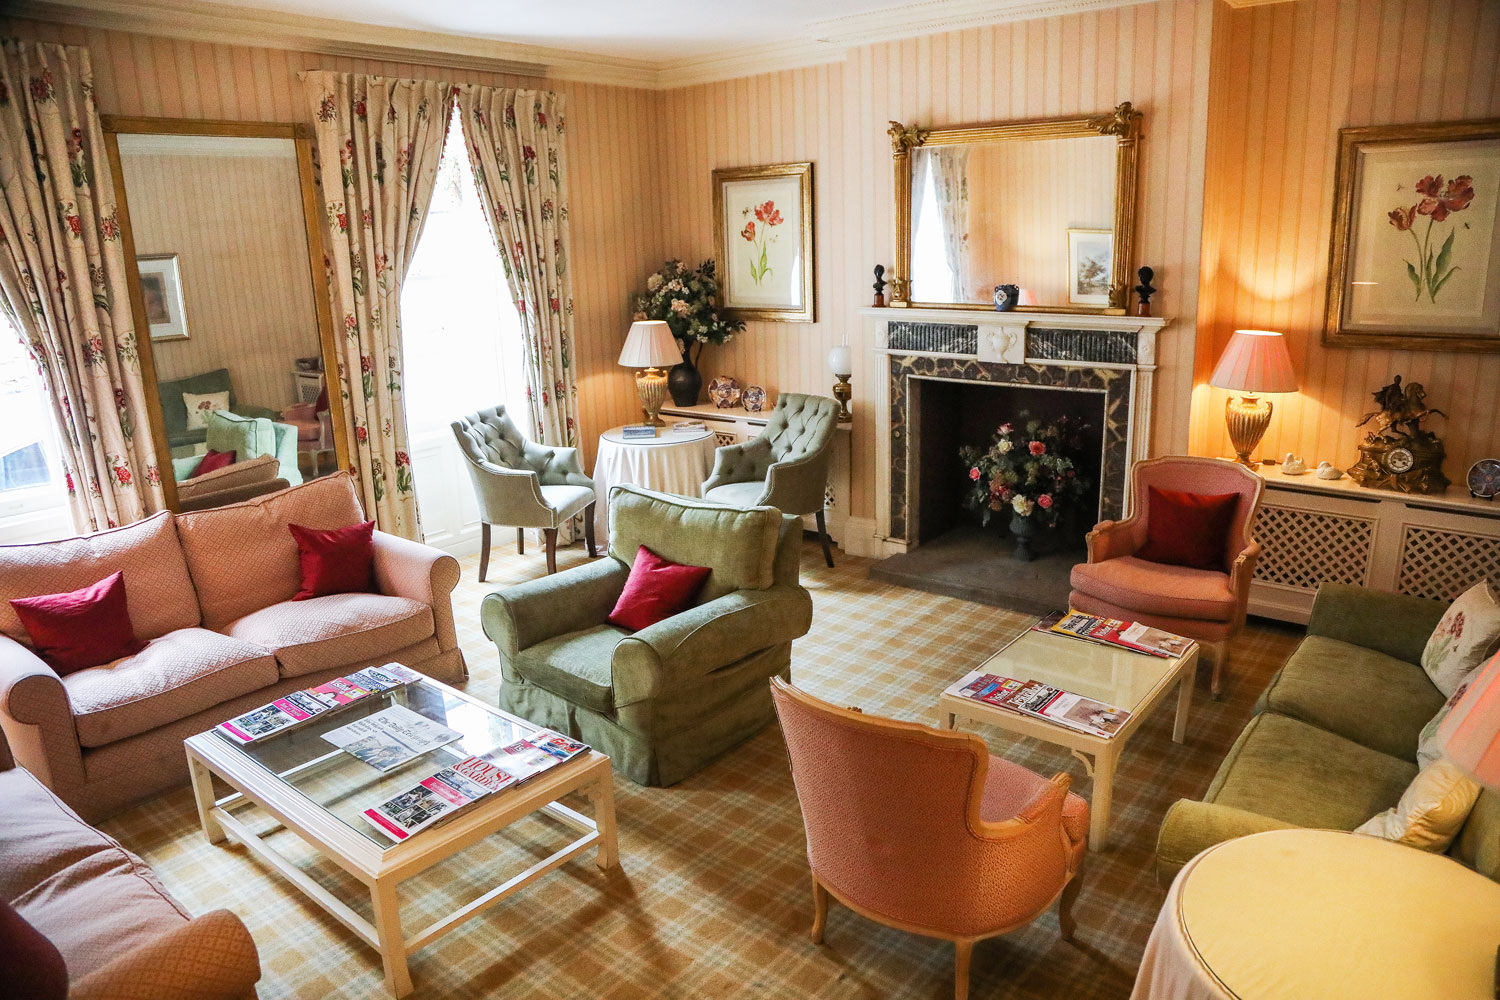 Luxurious Magazine Goes West To Review The Eastbury Hotel 2